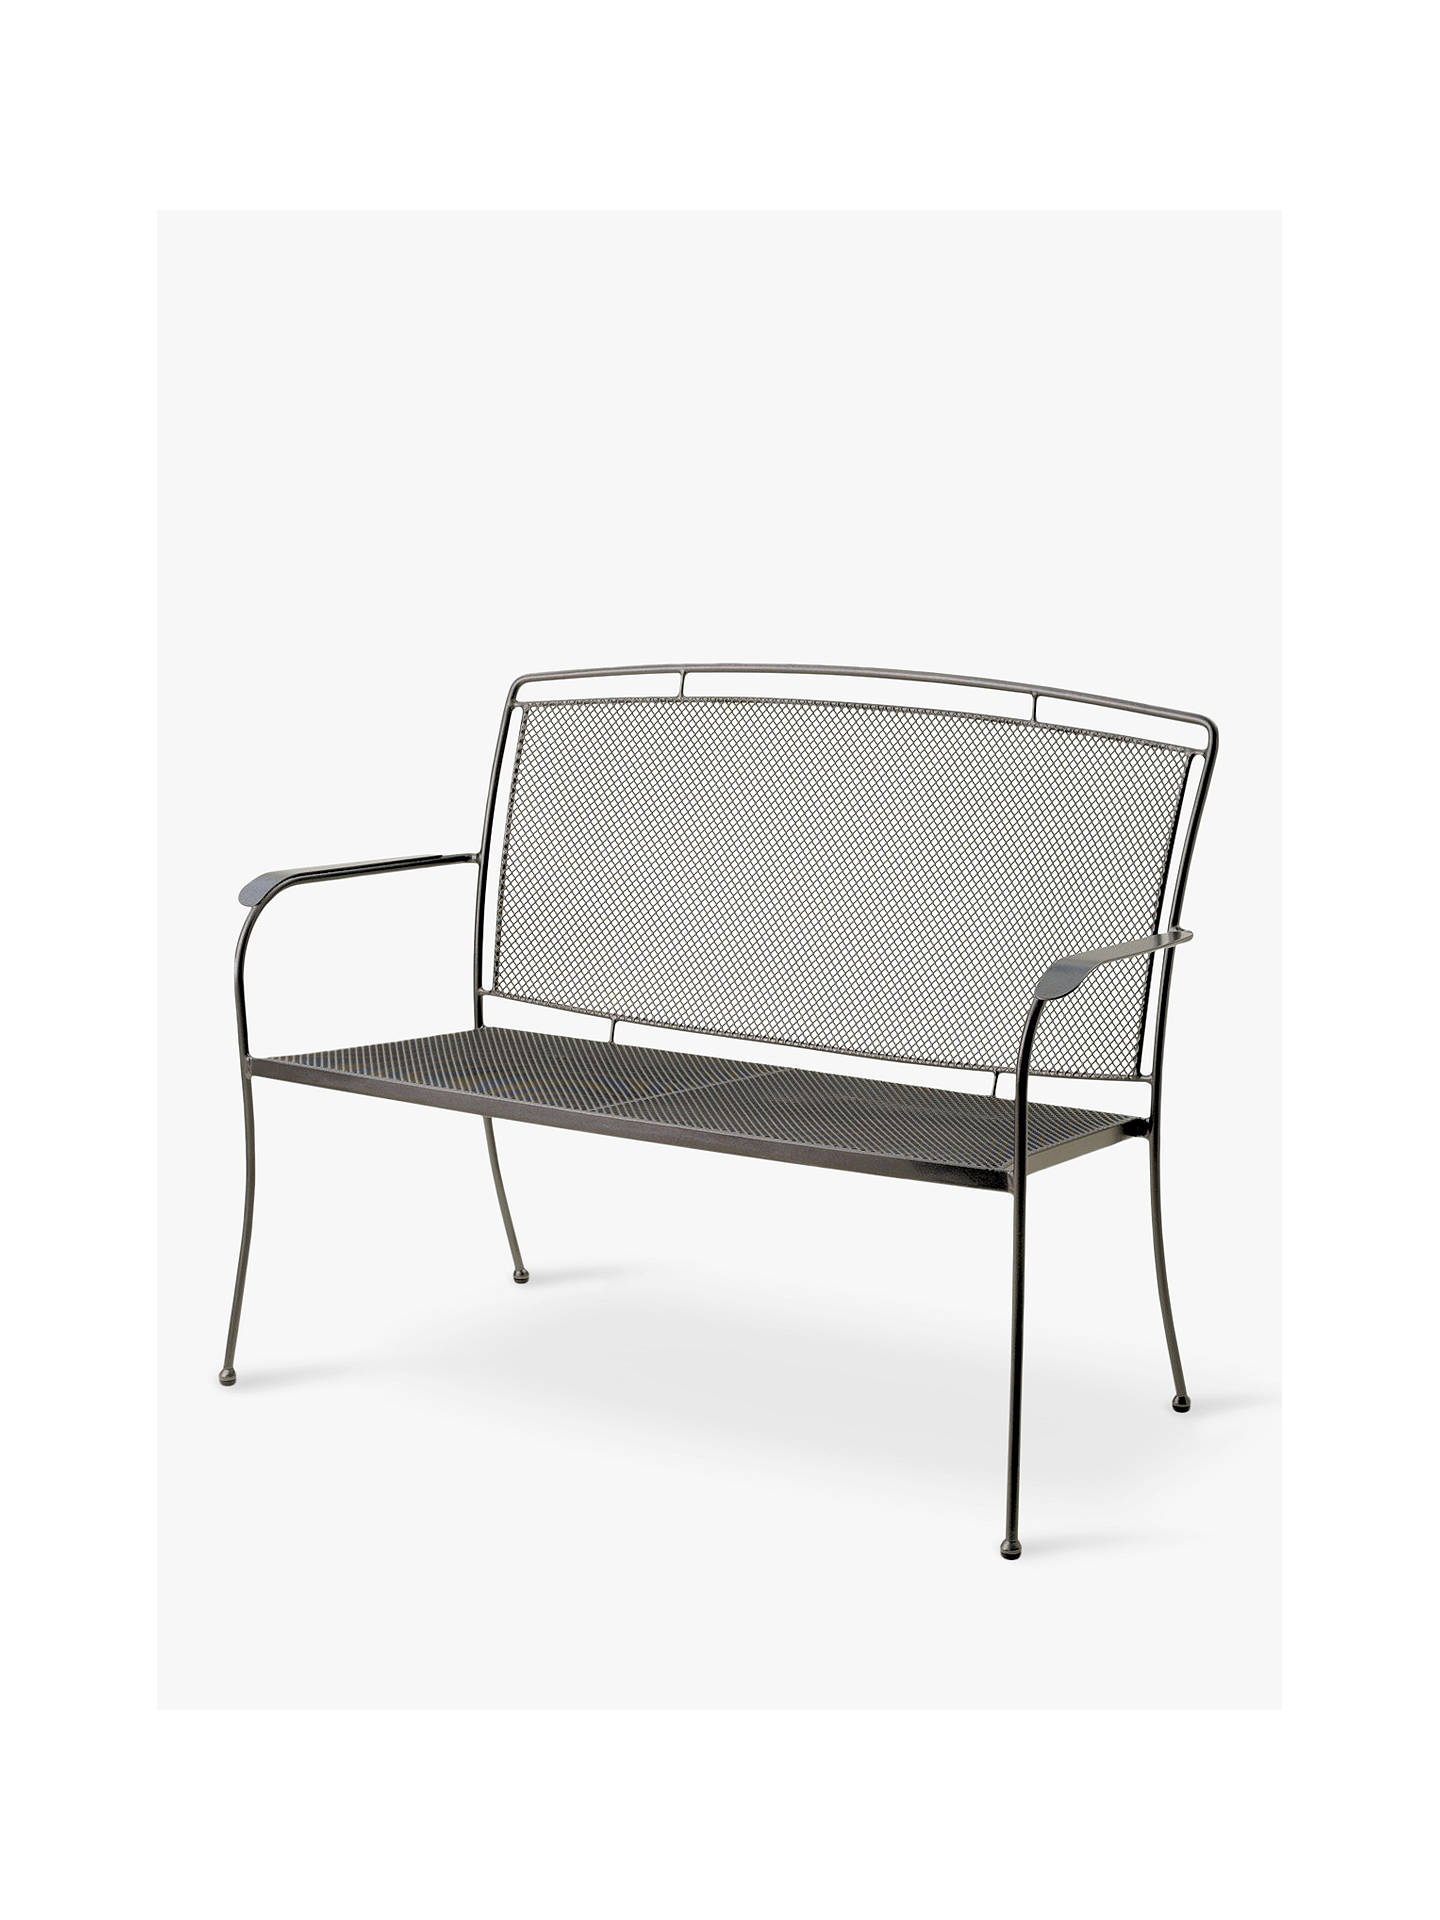 BuyJohn Lewis & Partners Henley by KETTLER 2-Seat Garden Bench, Grey Online at johnlewis.com